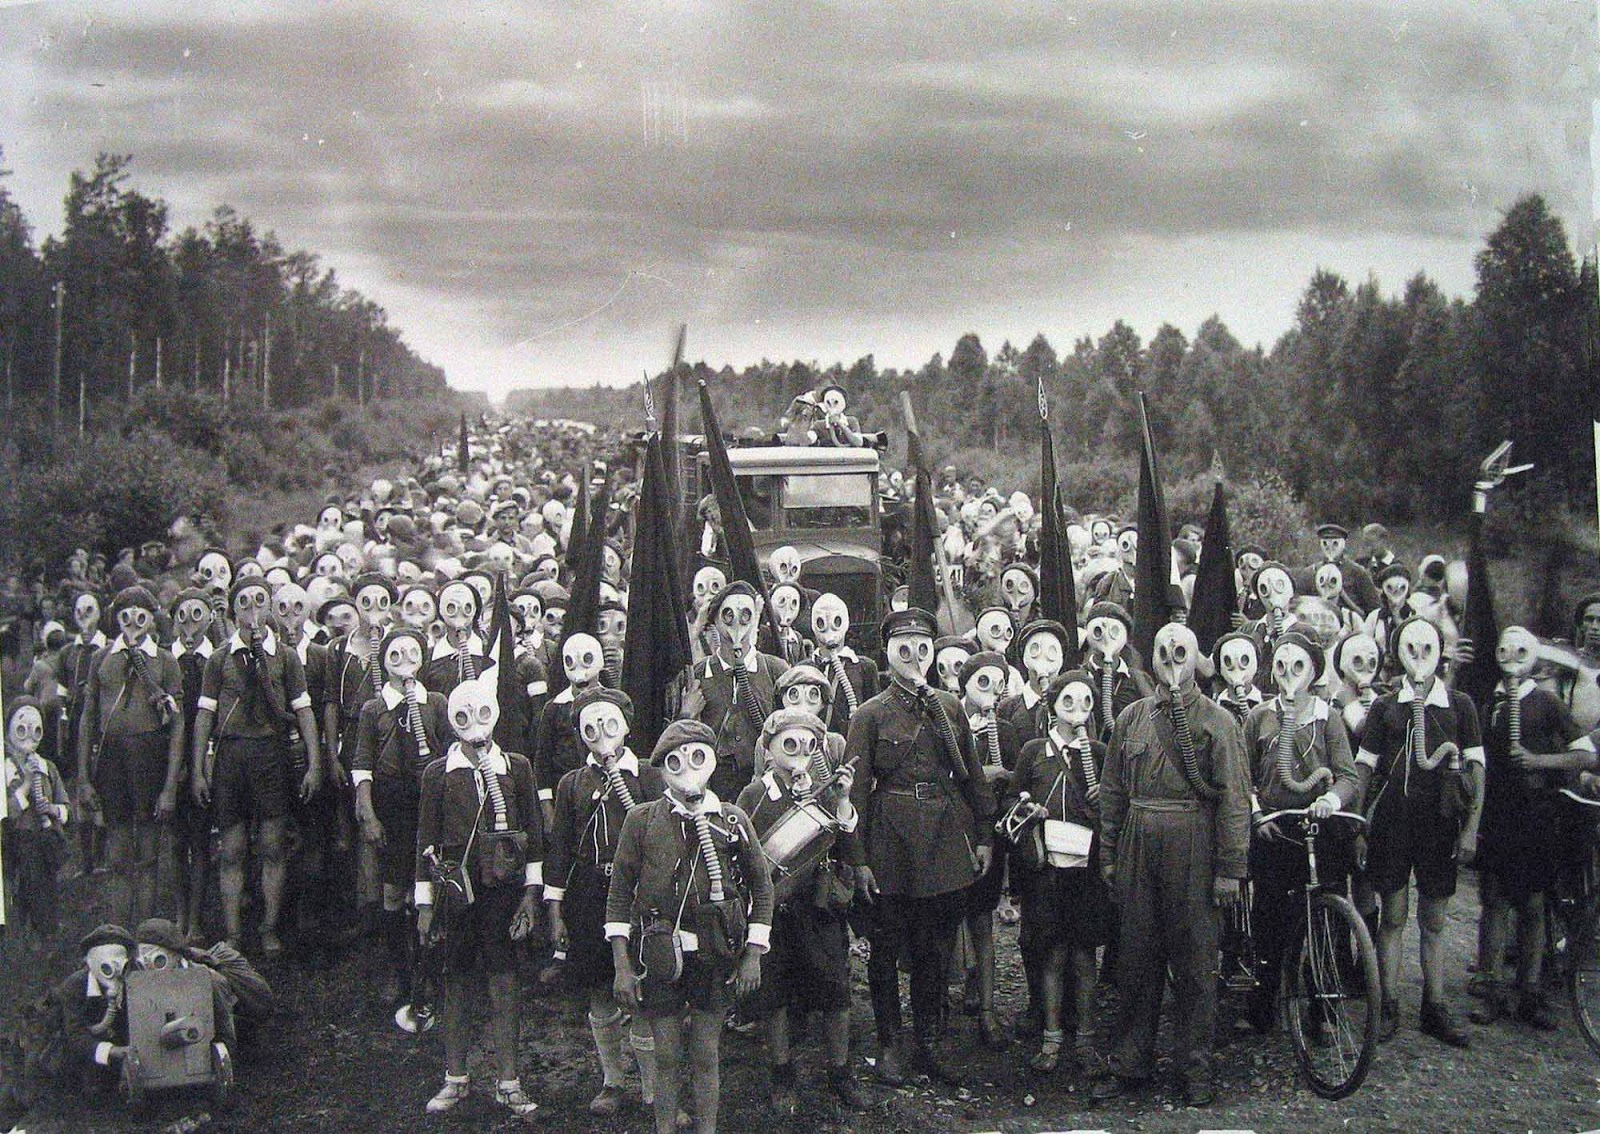 Pioneers of Leningrad in a defense drill, 1937.